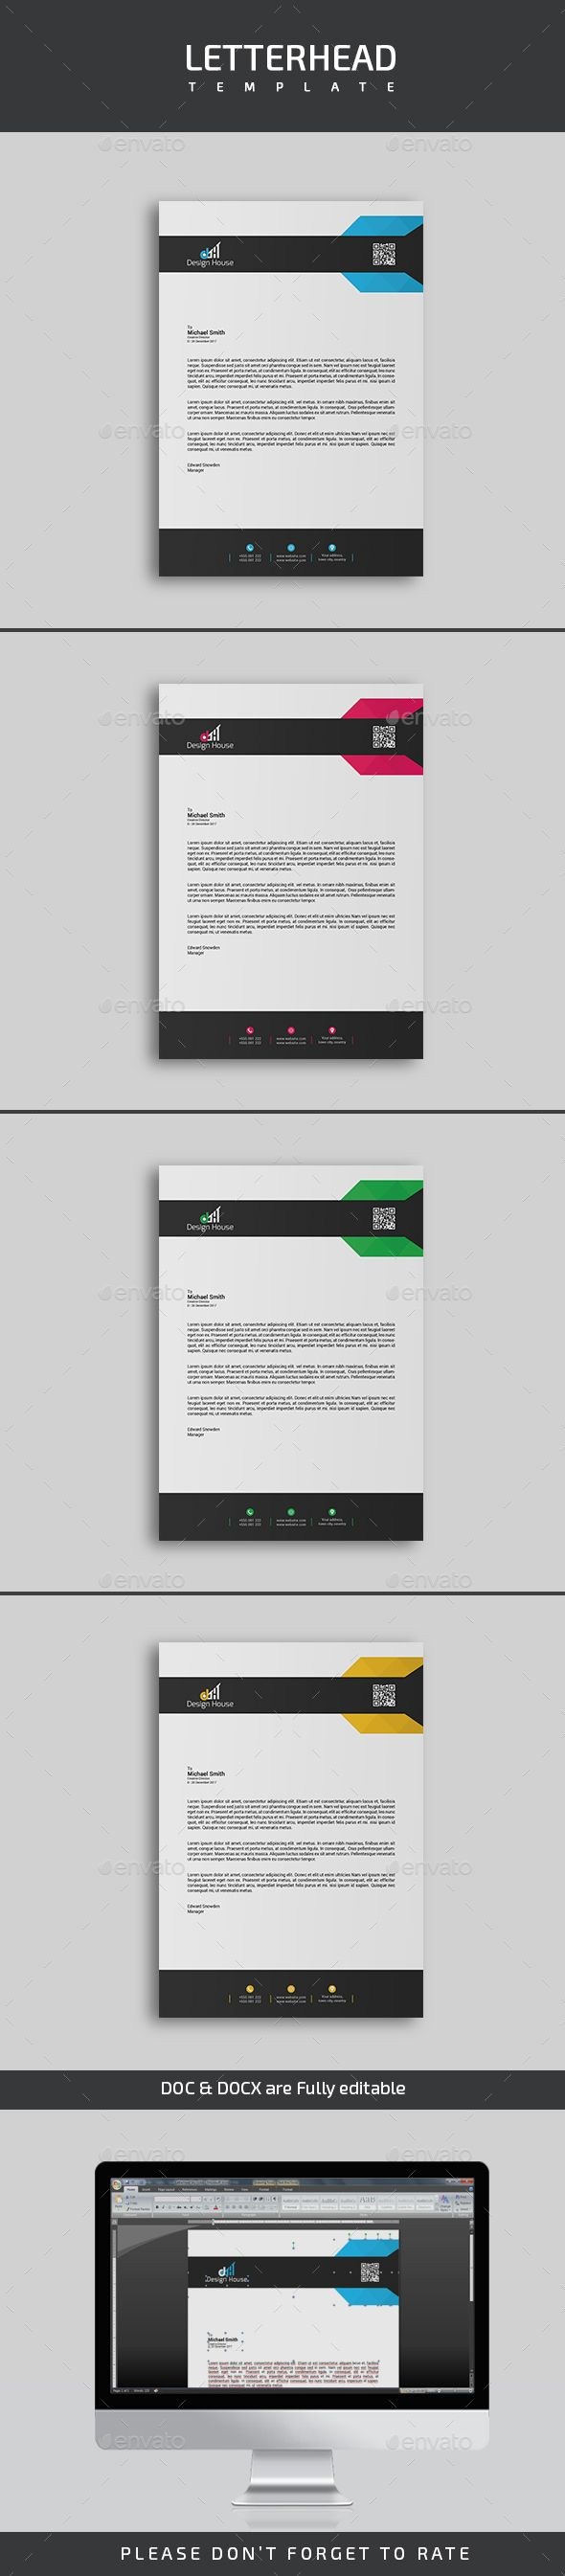 Letterhead template psd vector eps ai illustrator docx doc letterhead template psd vector eps ai illustrator docx doc spiritdancerdesigns Image collections